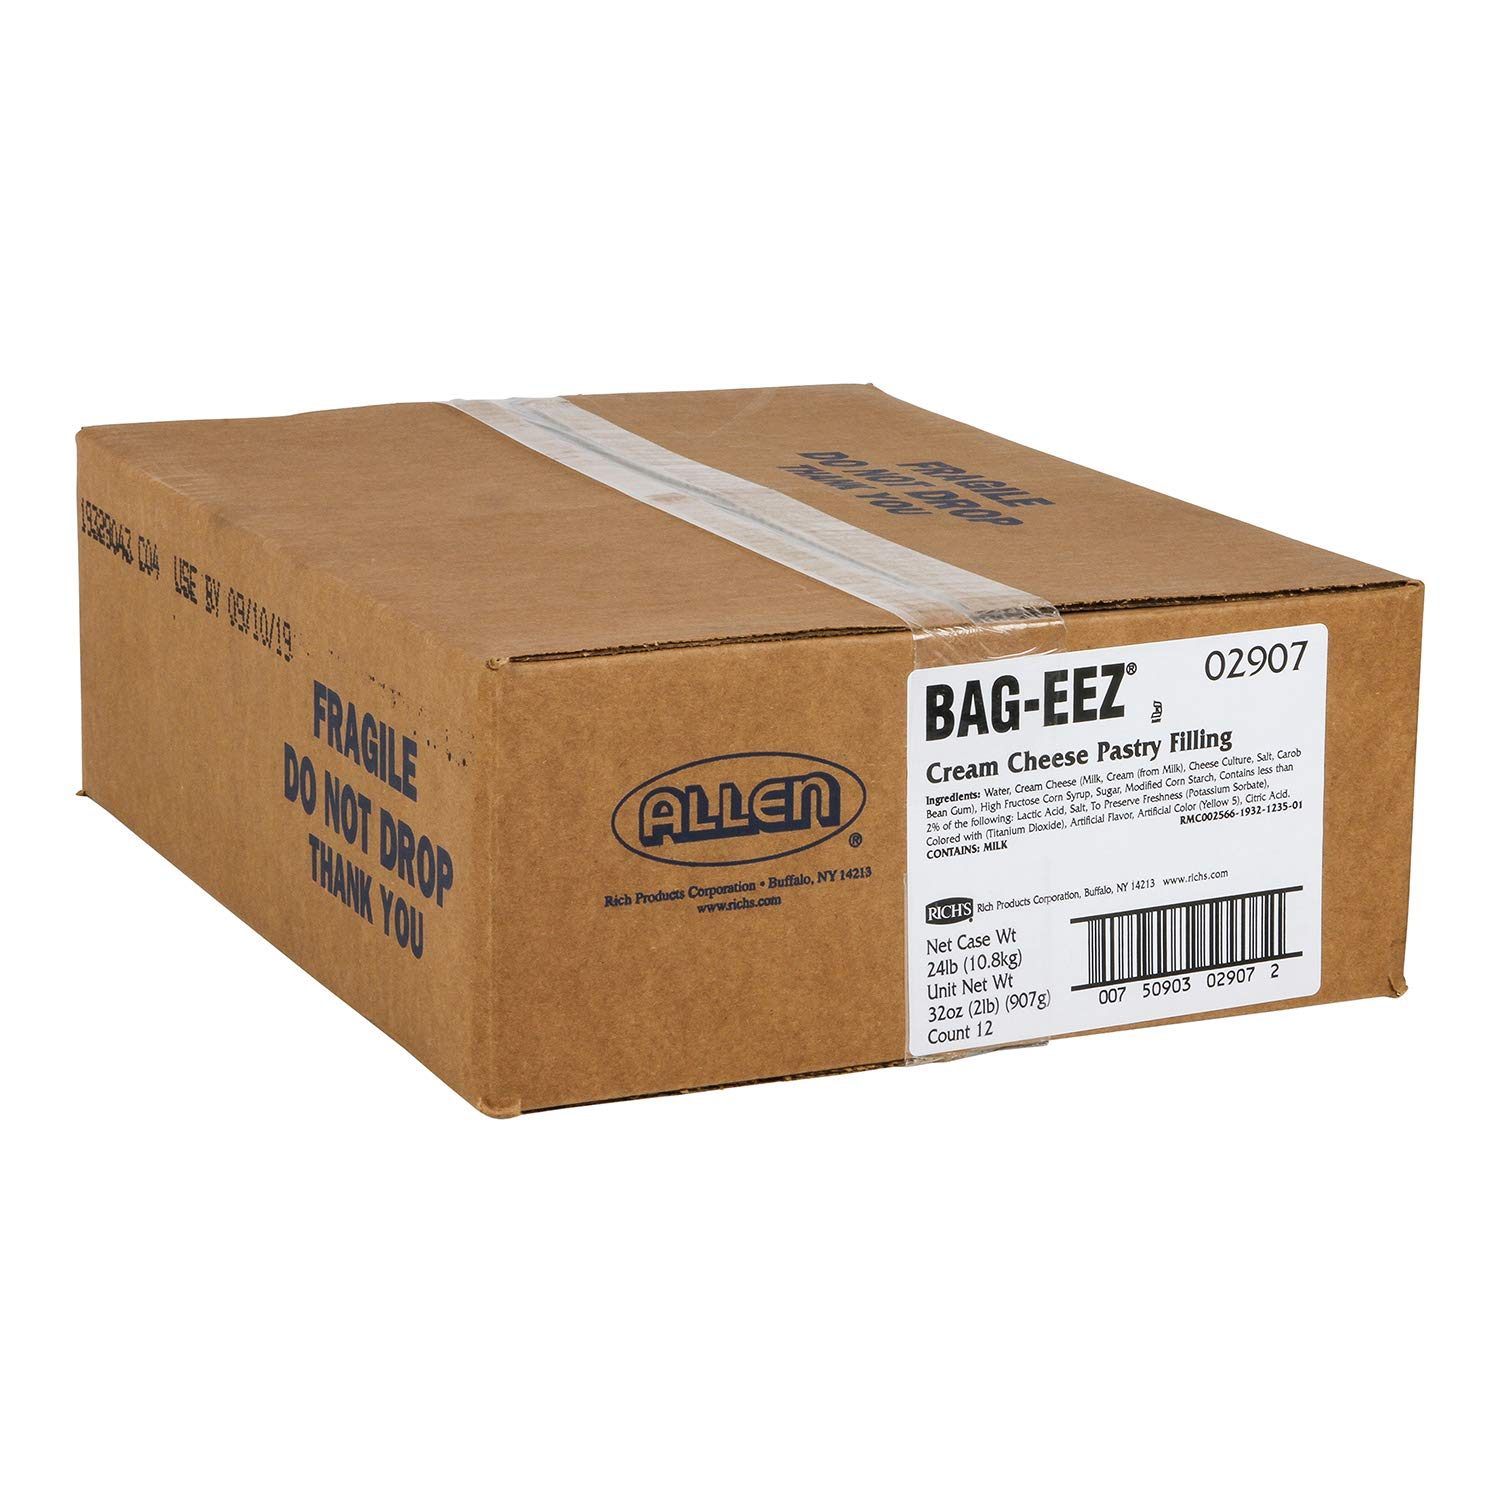 Rich's JW Allen Cream Cheese Pastry Filling Bag-Eez, 12 Pack, 2 lb Bags by Rich's (Image #3)